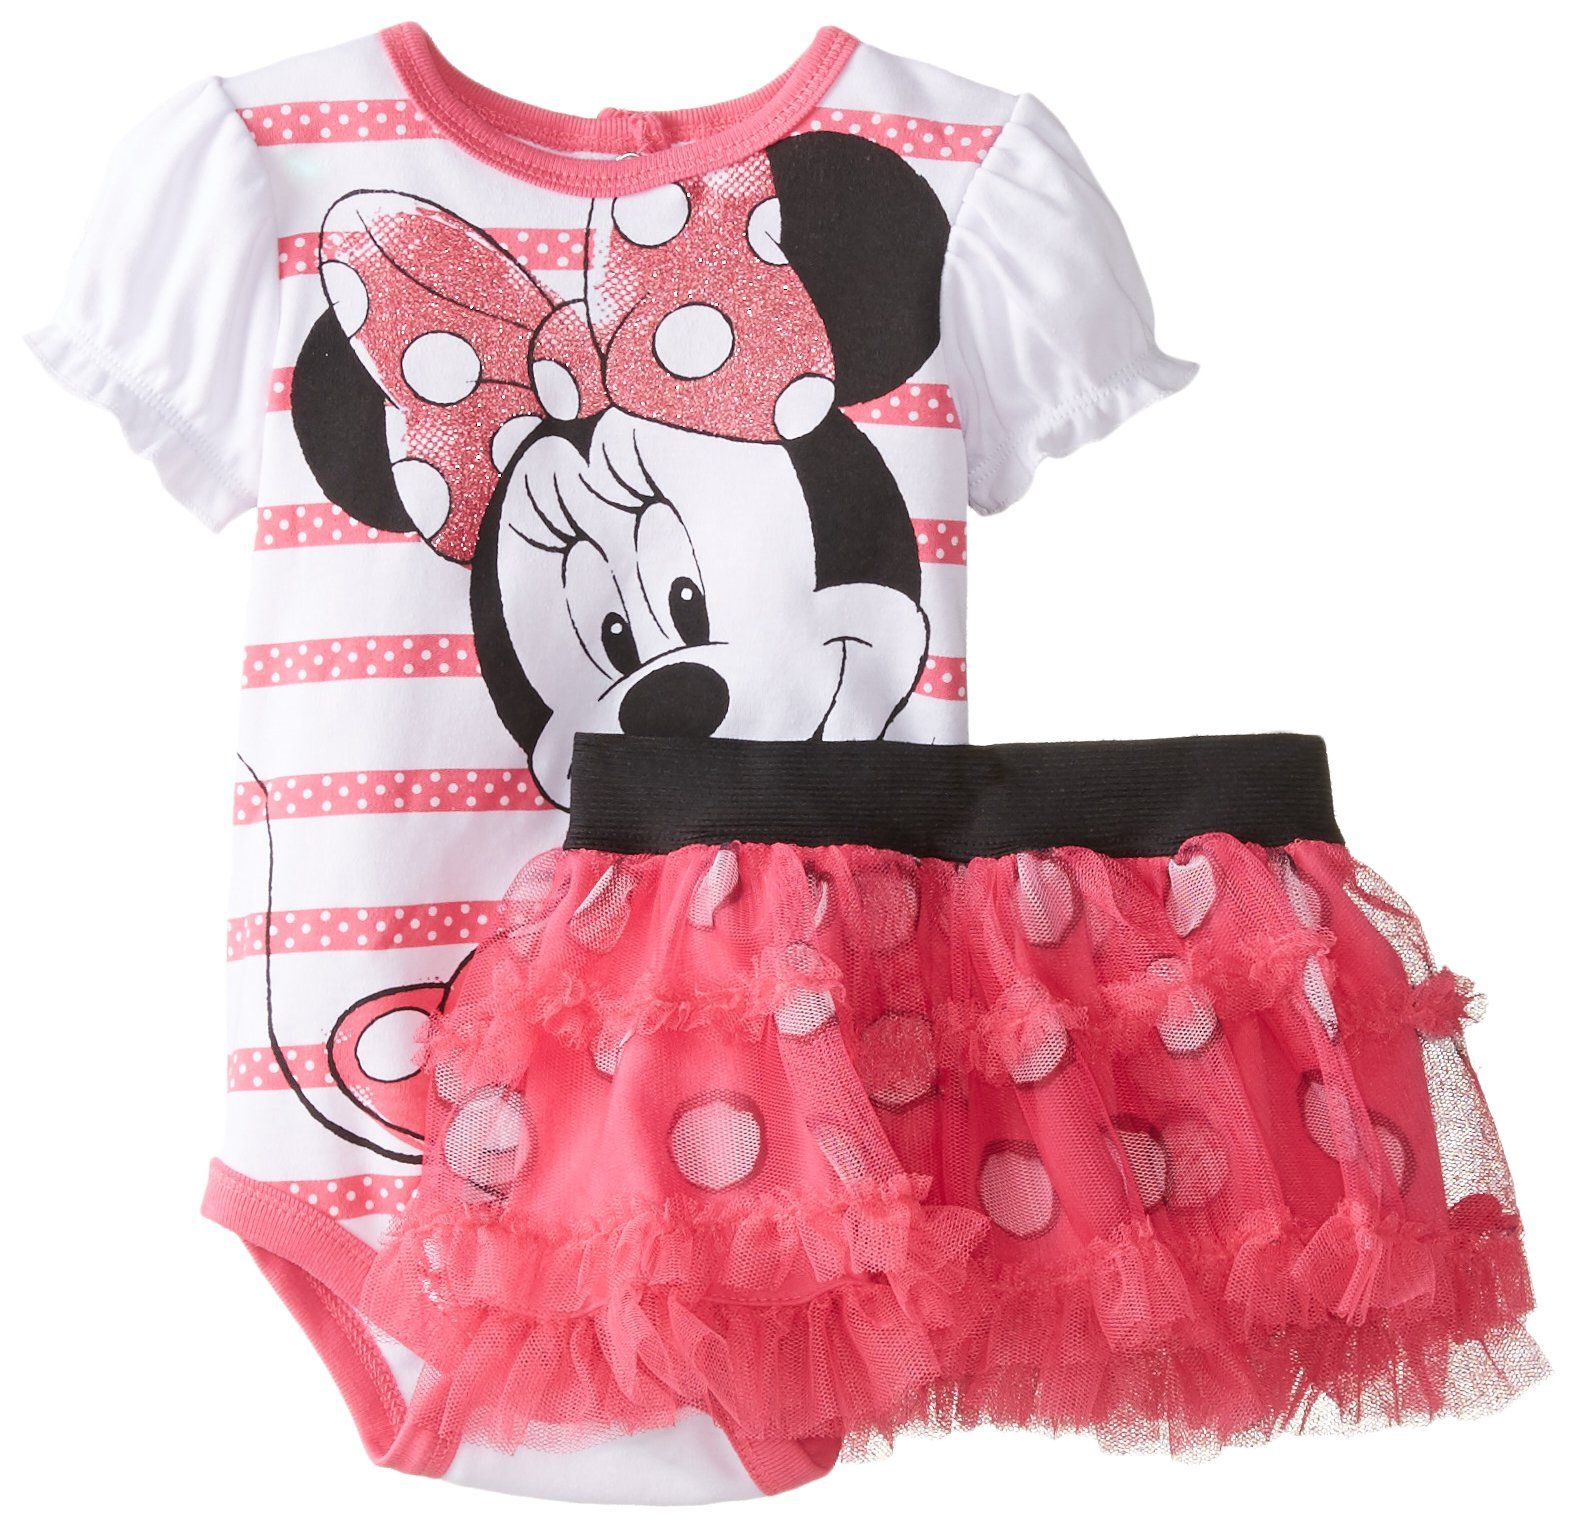 b656d601bba Disney Baby Baby-Girls Newborn Disney Minnie Mouse Soft Bodysuit and Skirt  Set, Pink, 9 Months